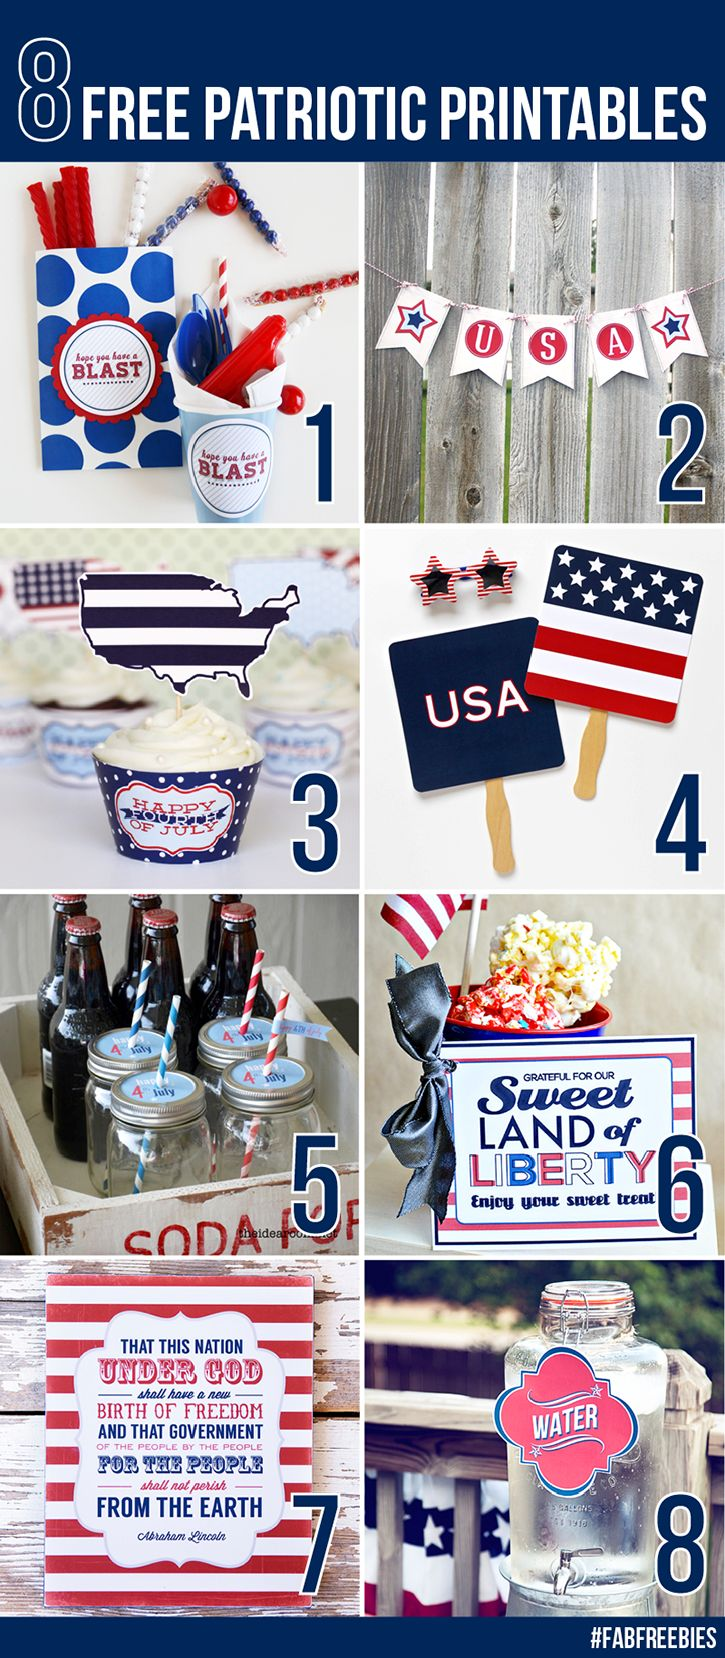 8 Patriotic Printables from your favorite bloggers! They're all FREE and they color coordinate!